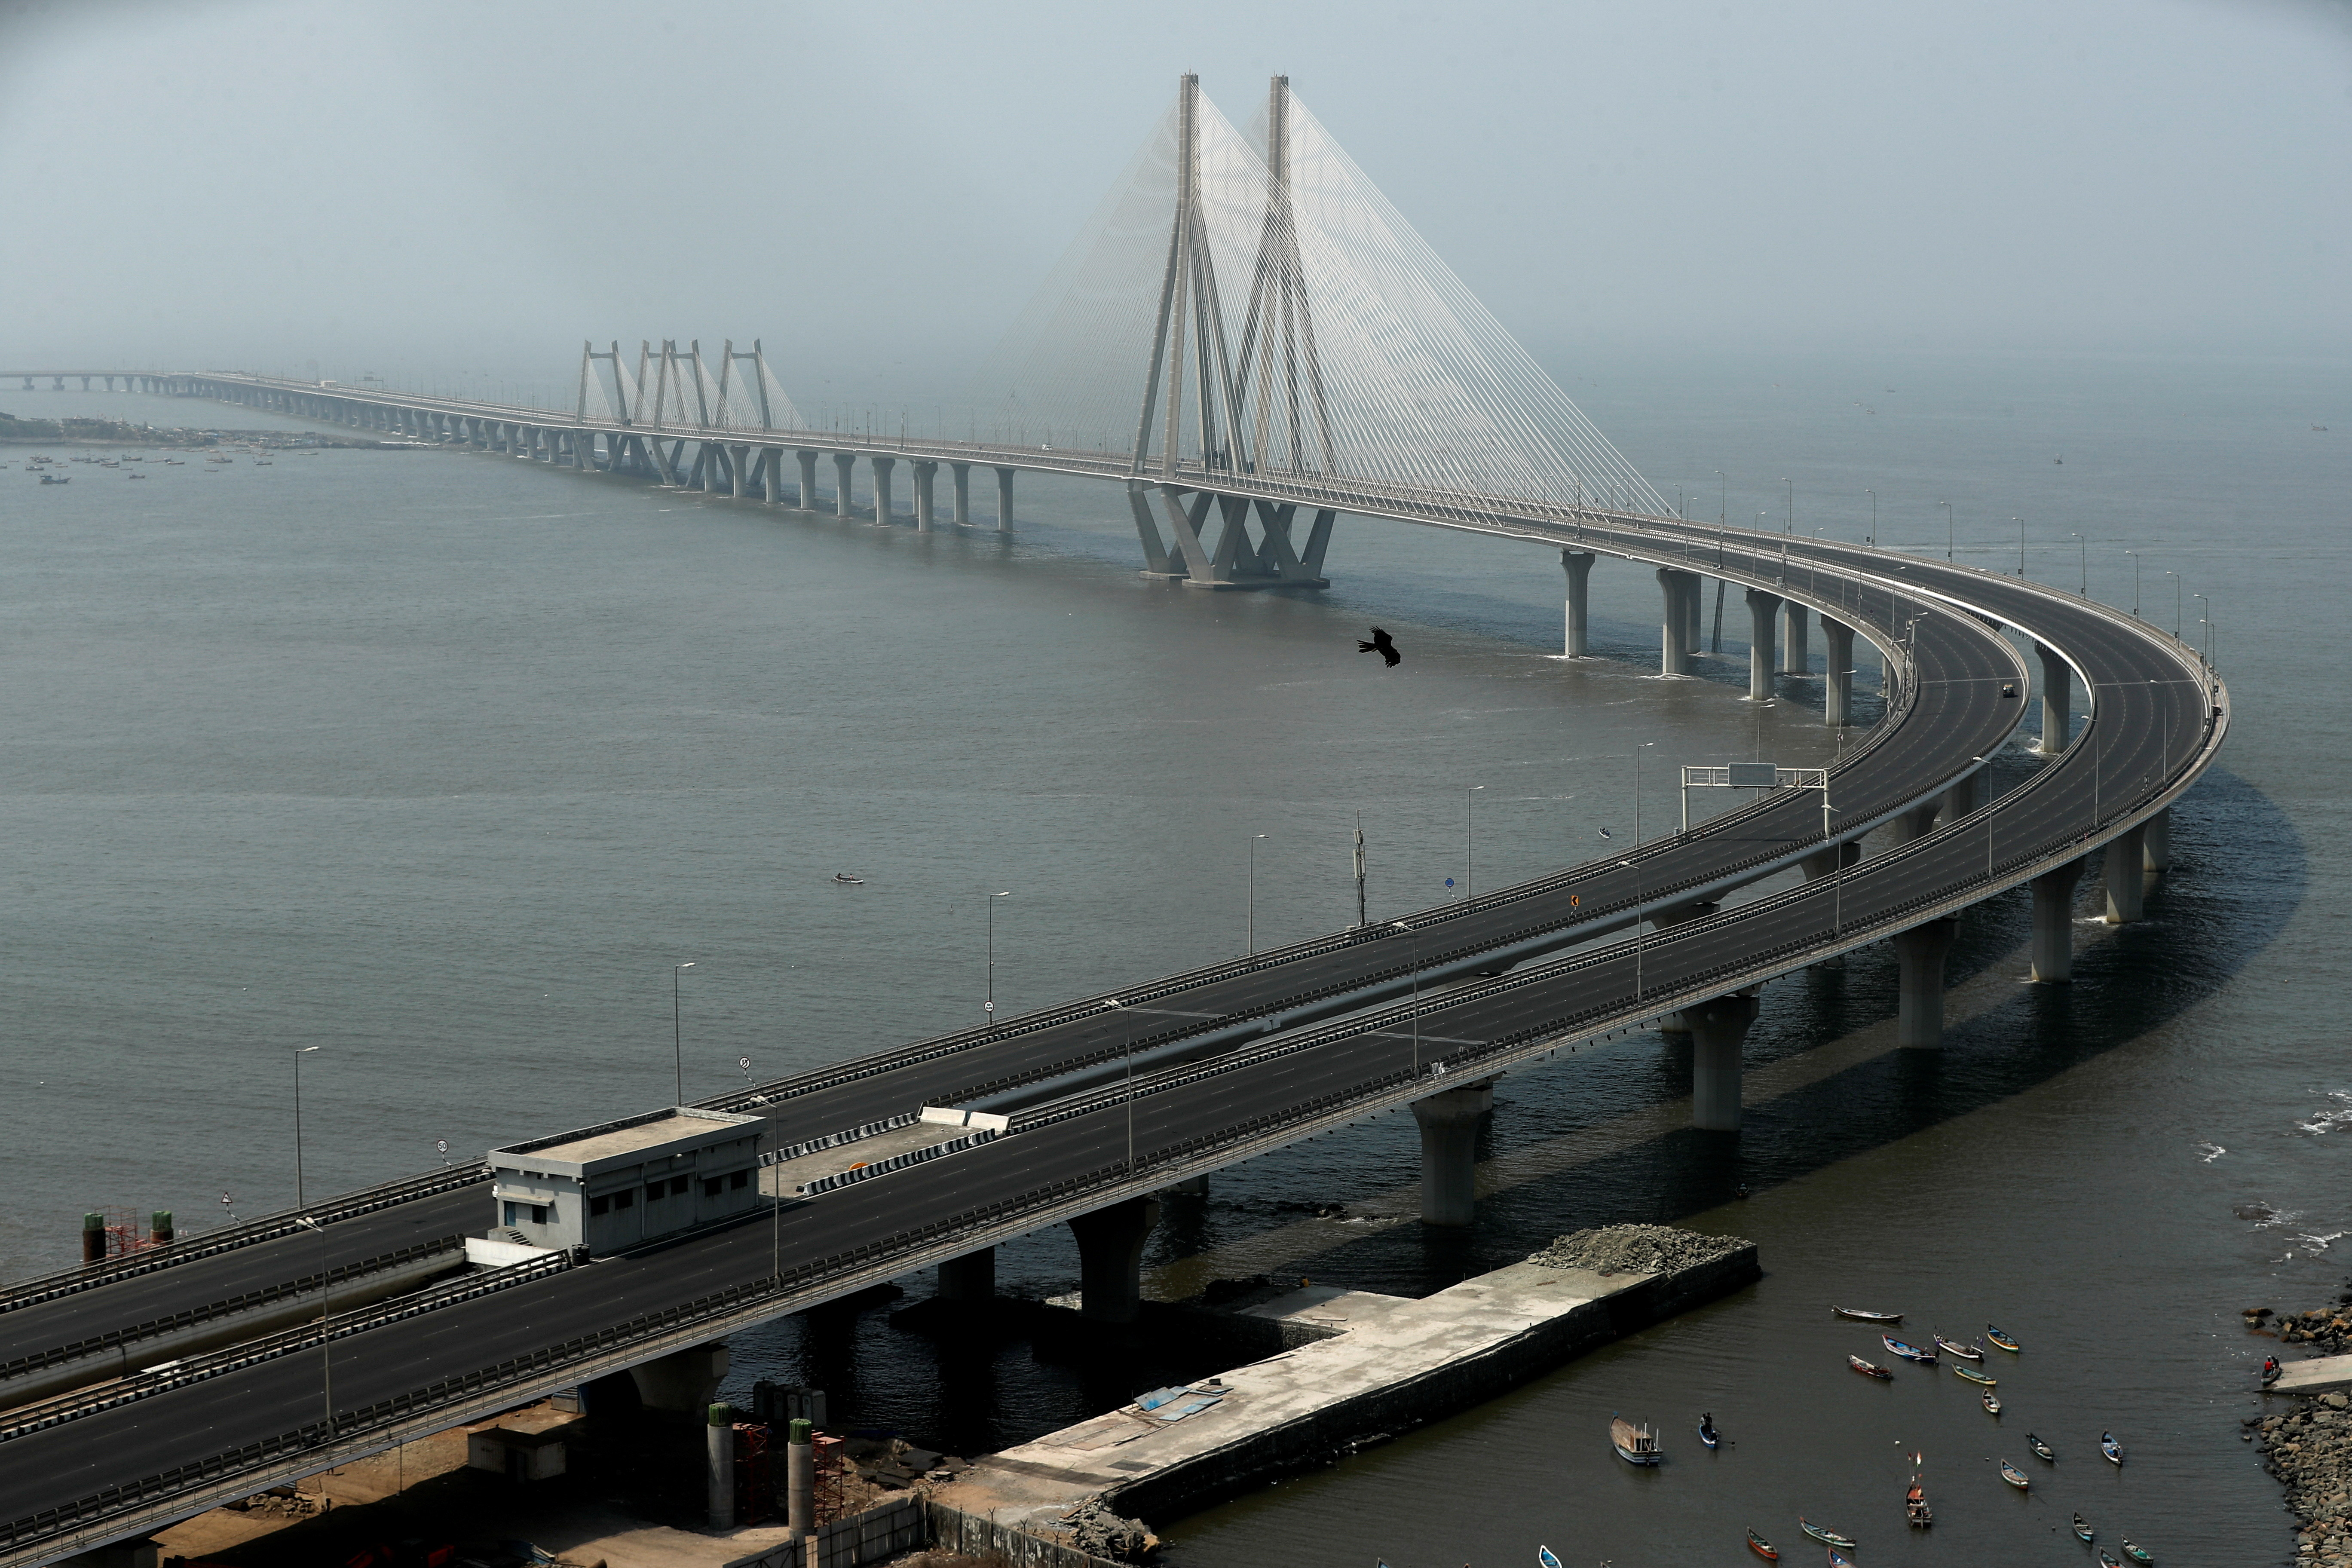 A deserted Bandra-Worli sea link is seen during a weekend lockdown to limit the spread of the coronavirus disease (COVID-19) in the country, in Mumbai, India, April 10, 2021. REUTERS/Francis Mascarenhas     TPX IMAGES OF THE DAY - RC2WSM9R881K